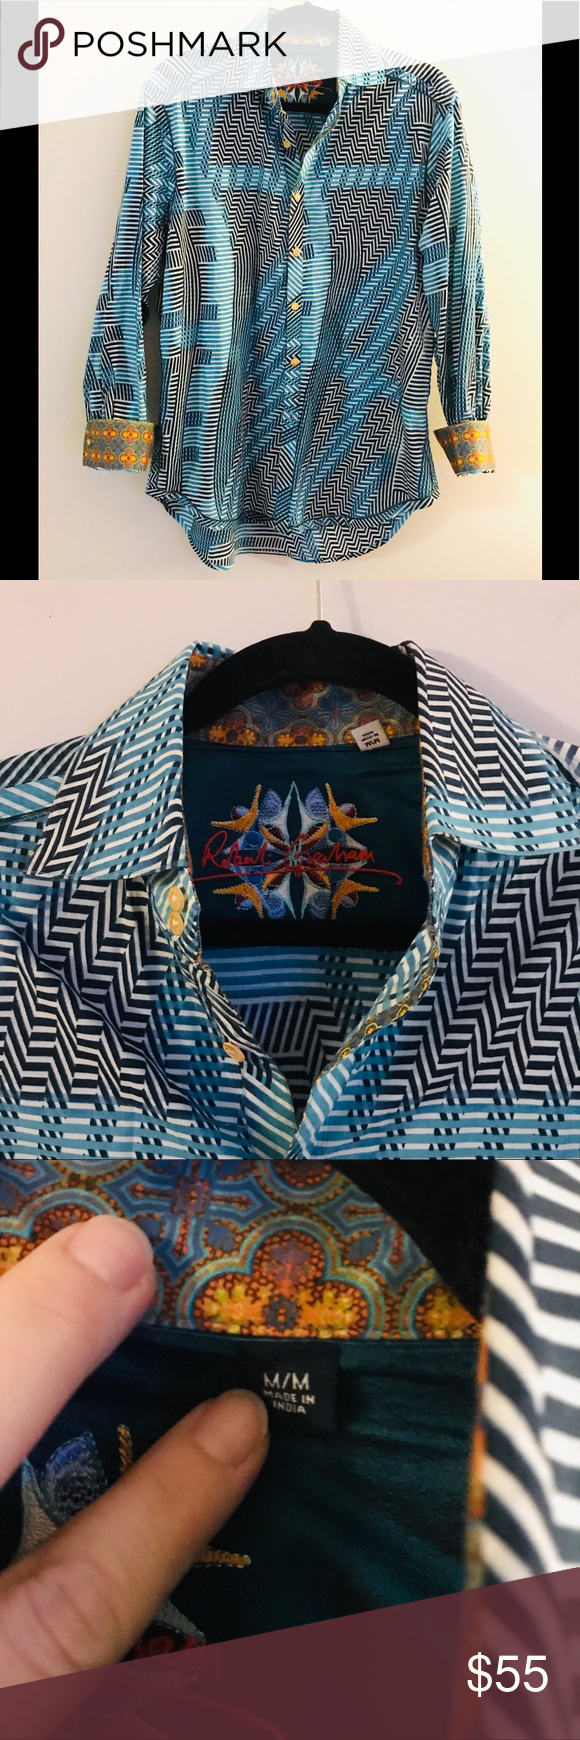 Robert Graham Geometric Button Up Sz Med Print Buttons Clothes Design Fashion